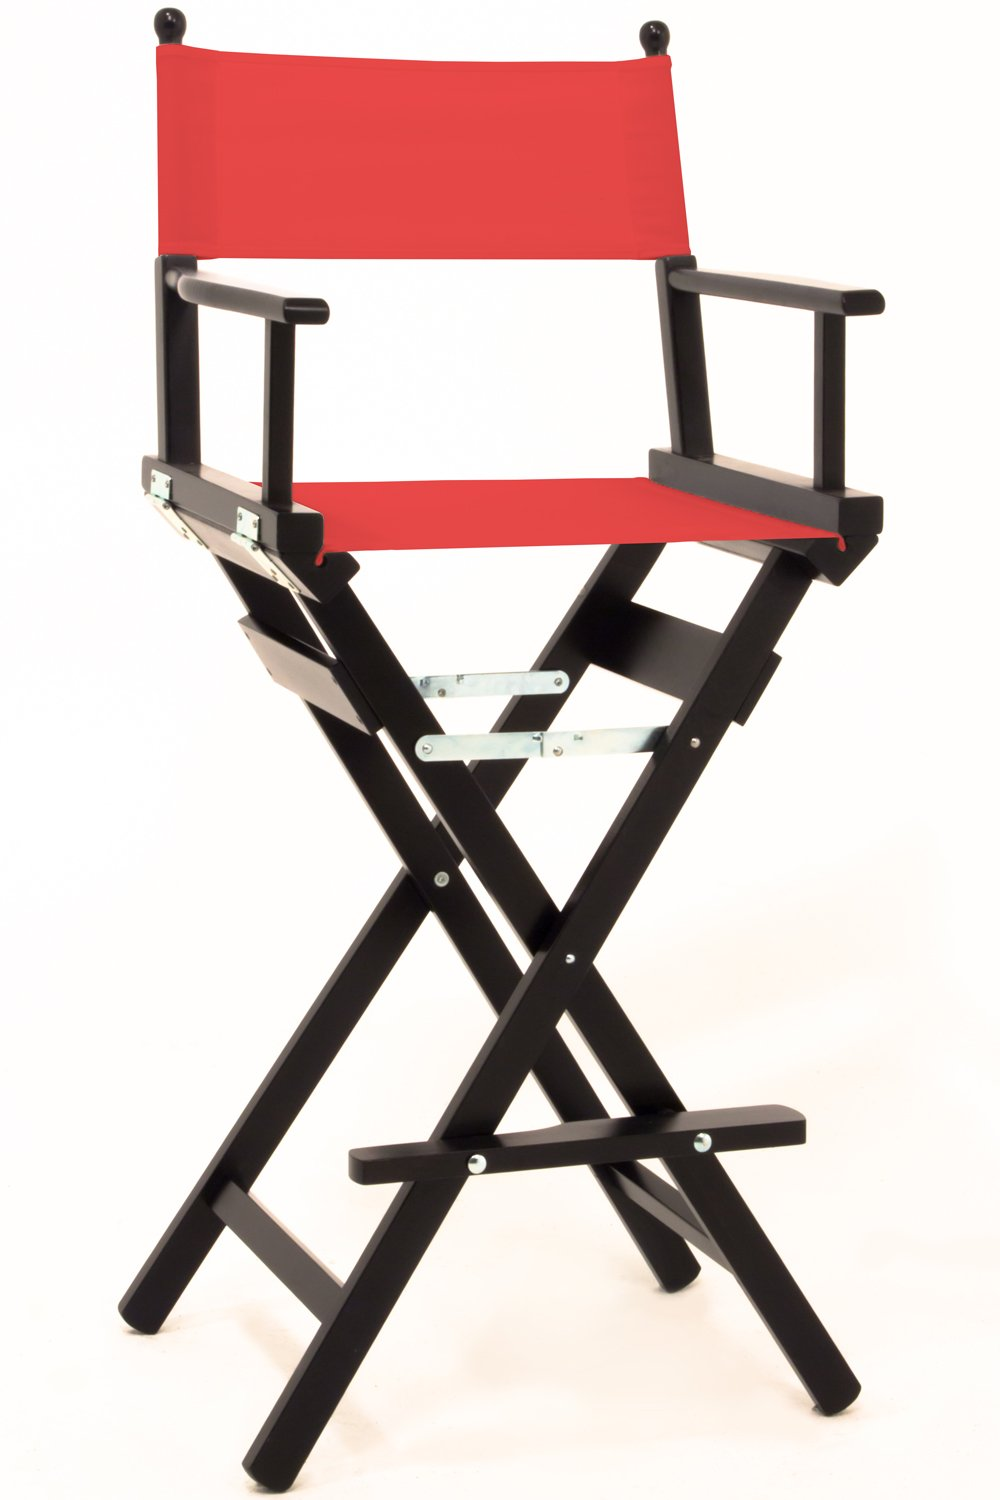 Professional Makeup Artist Chair, Black Painted FSC Wood, includes Canvas Set (Black) Personalise Online